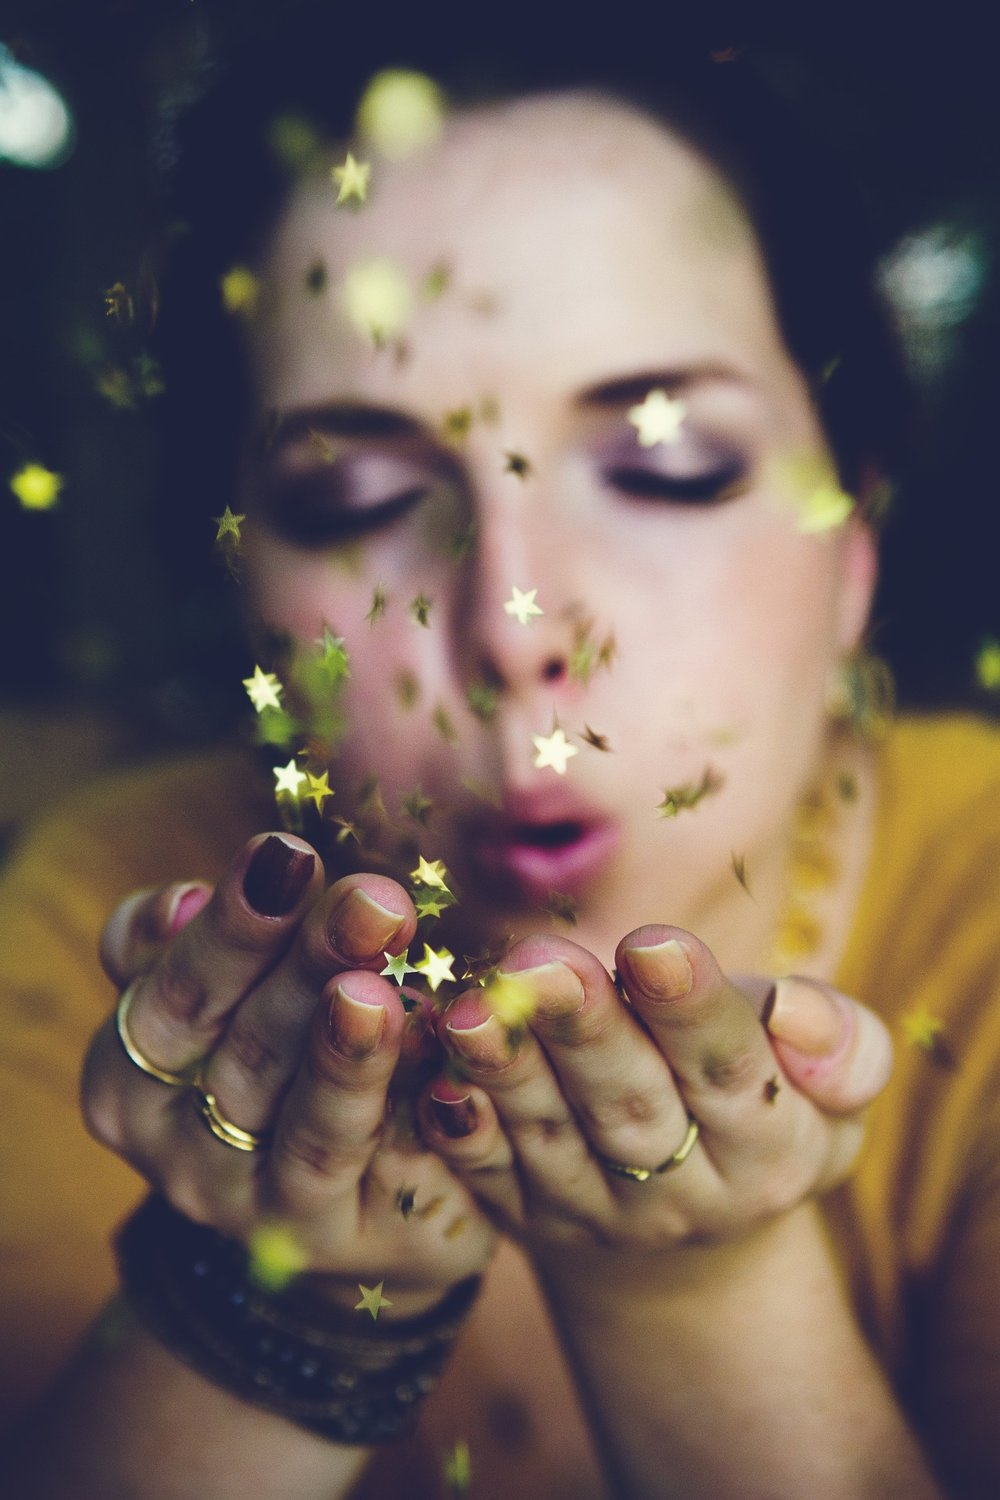 Photo of woman blowing little golden stars out of her open palms.